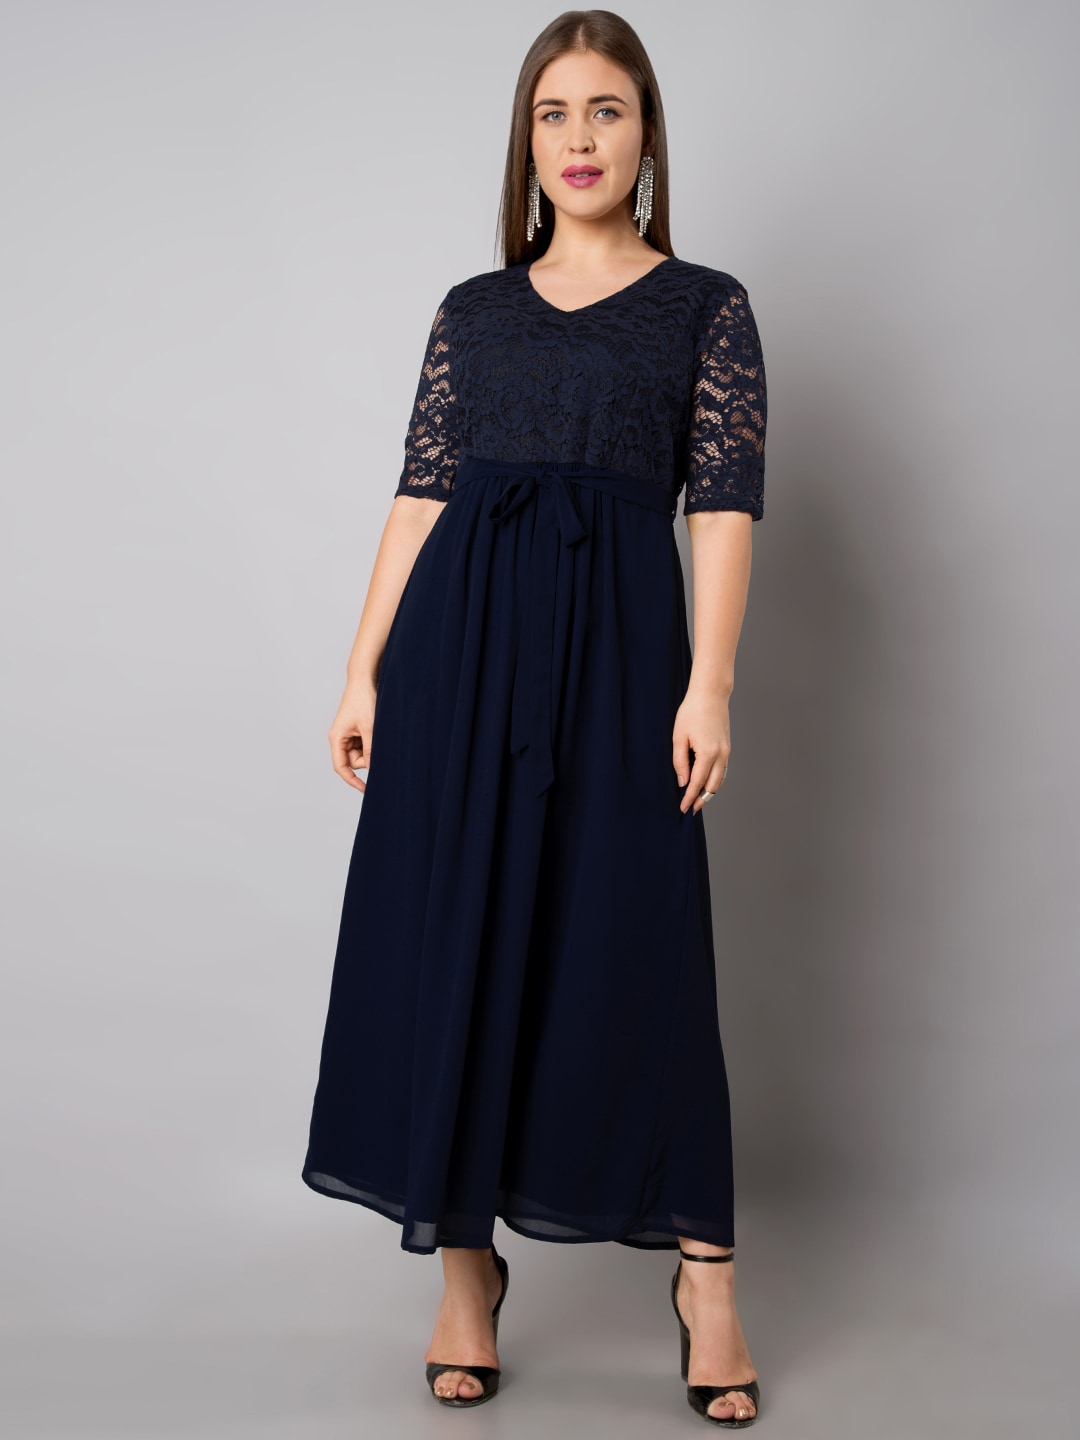 d56332c653b Faballey Maxi Dresses - Buy Faballey Maxi Dresses online in India